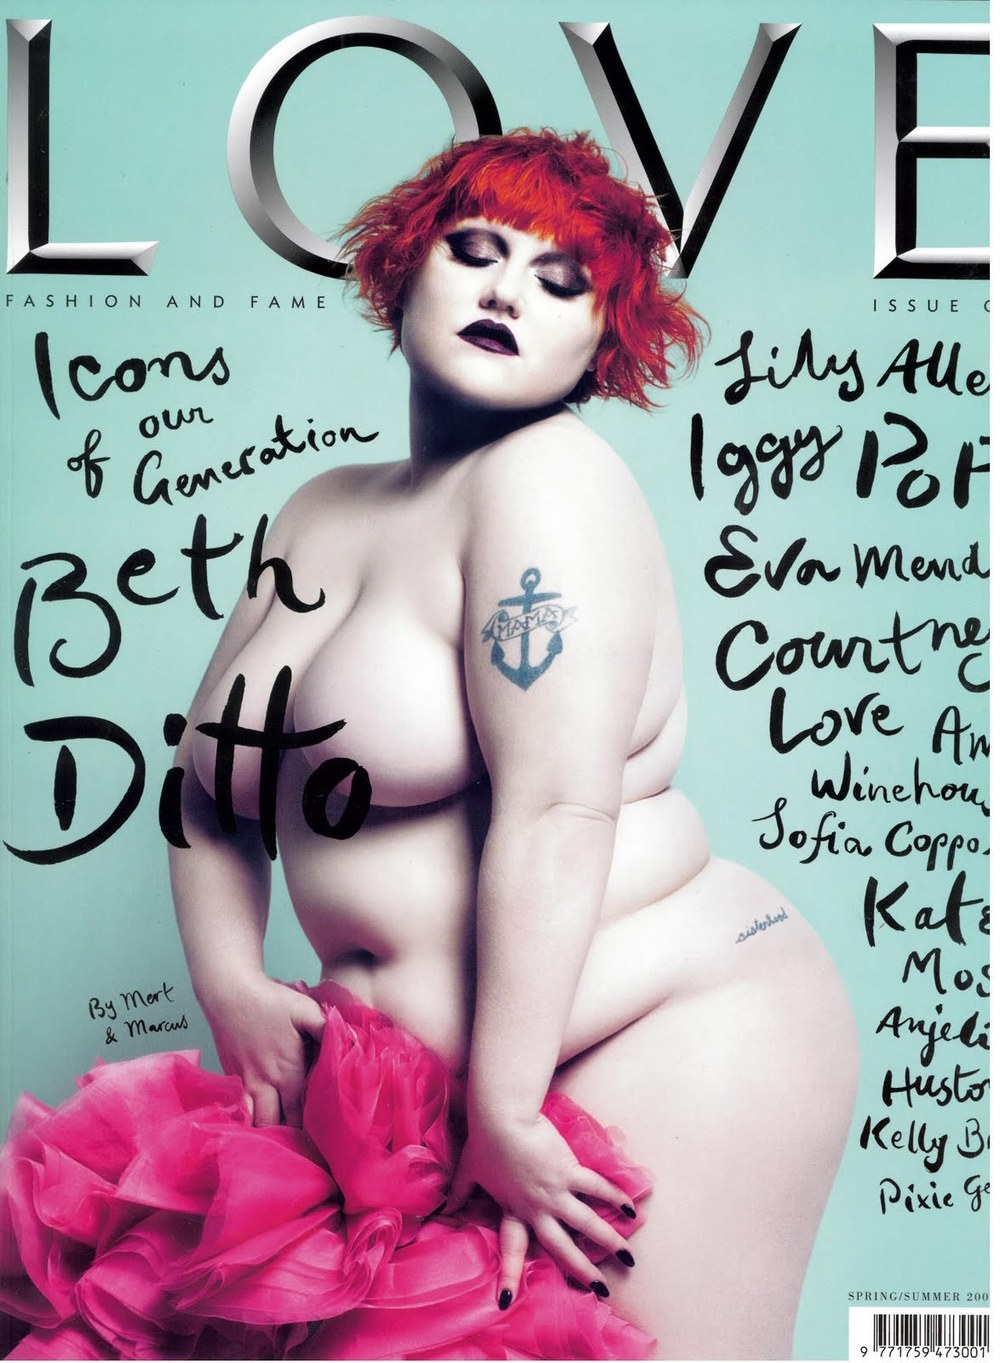 beth-ditto-on-cover-of-love.jpg